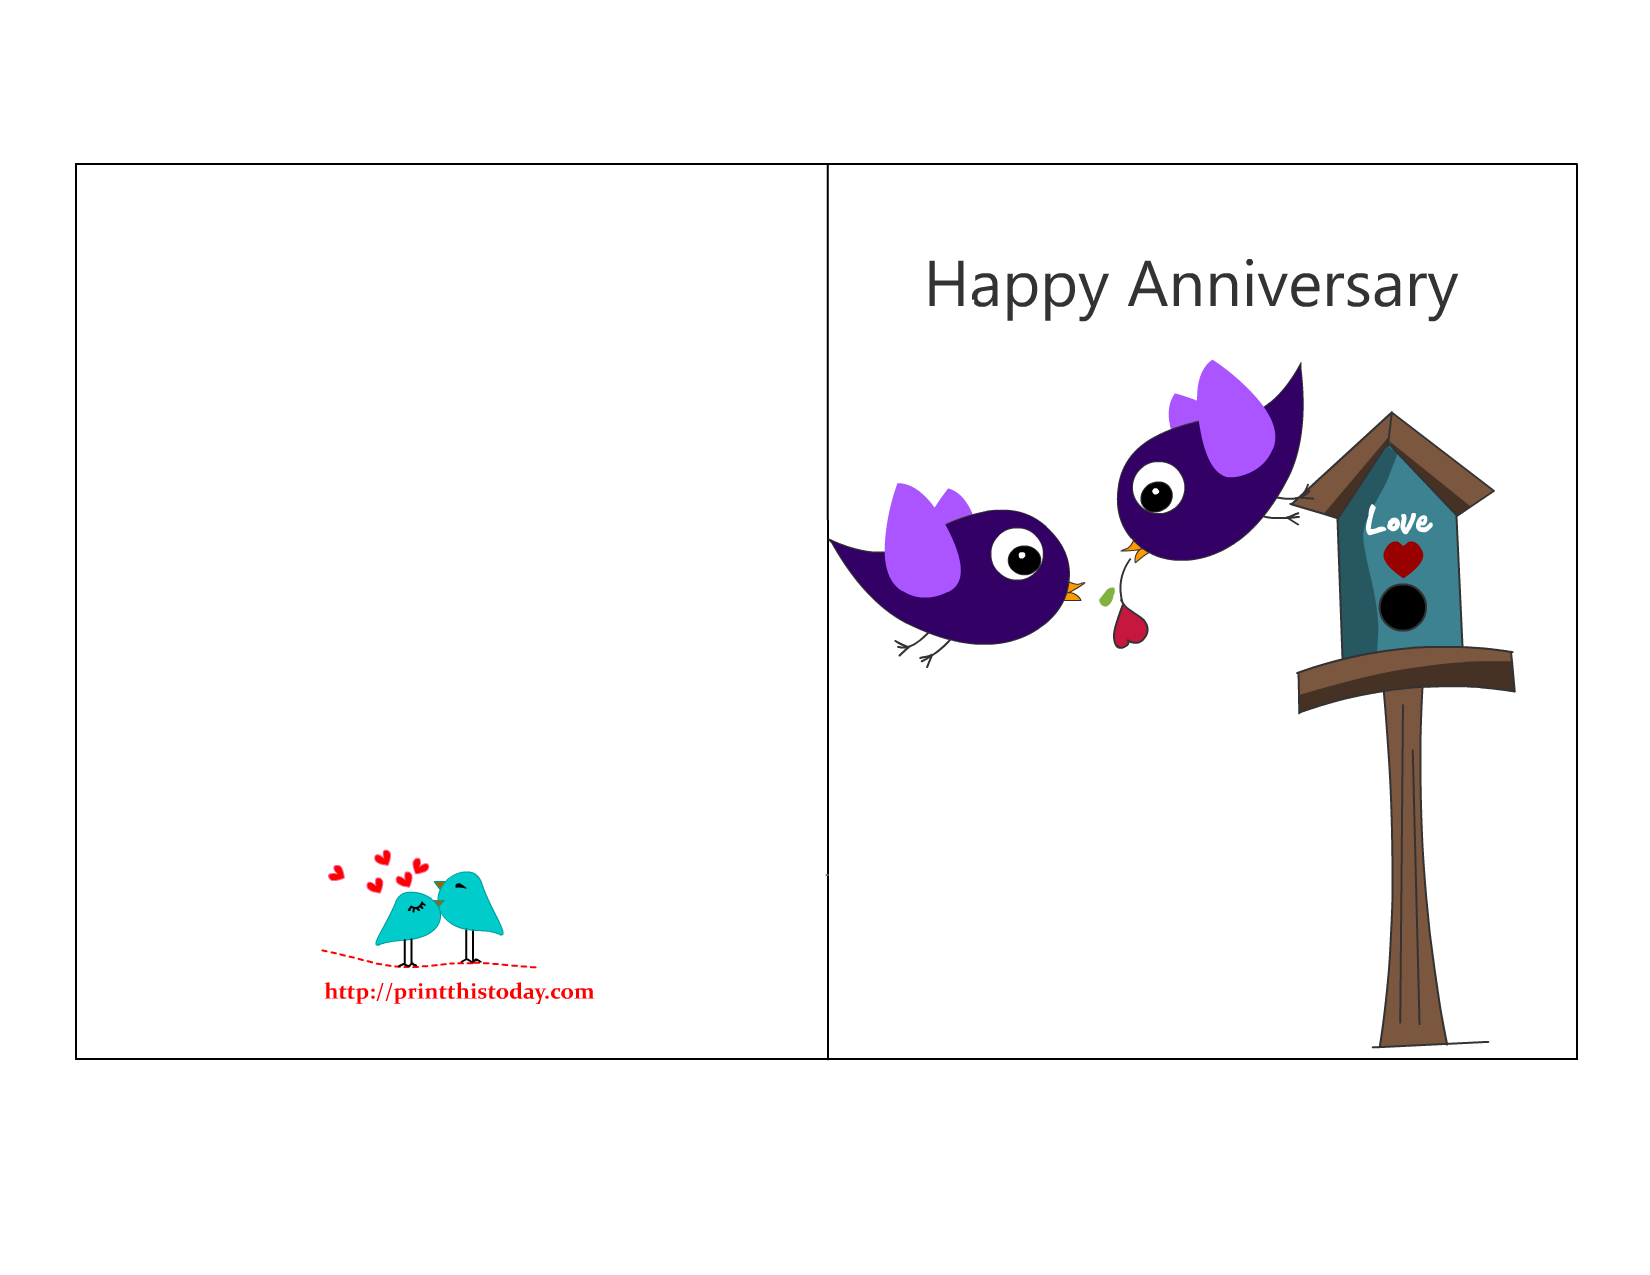 Free Anniversary Cards To Print Free Printable Anniversary Ideas 2019 Make We Free Anniversary Cards Happy Anniversary Cards Free Printable Anniversary Cards